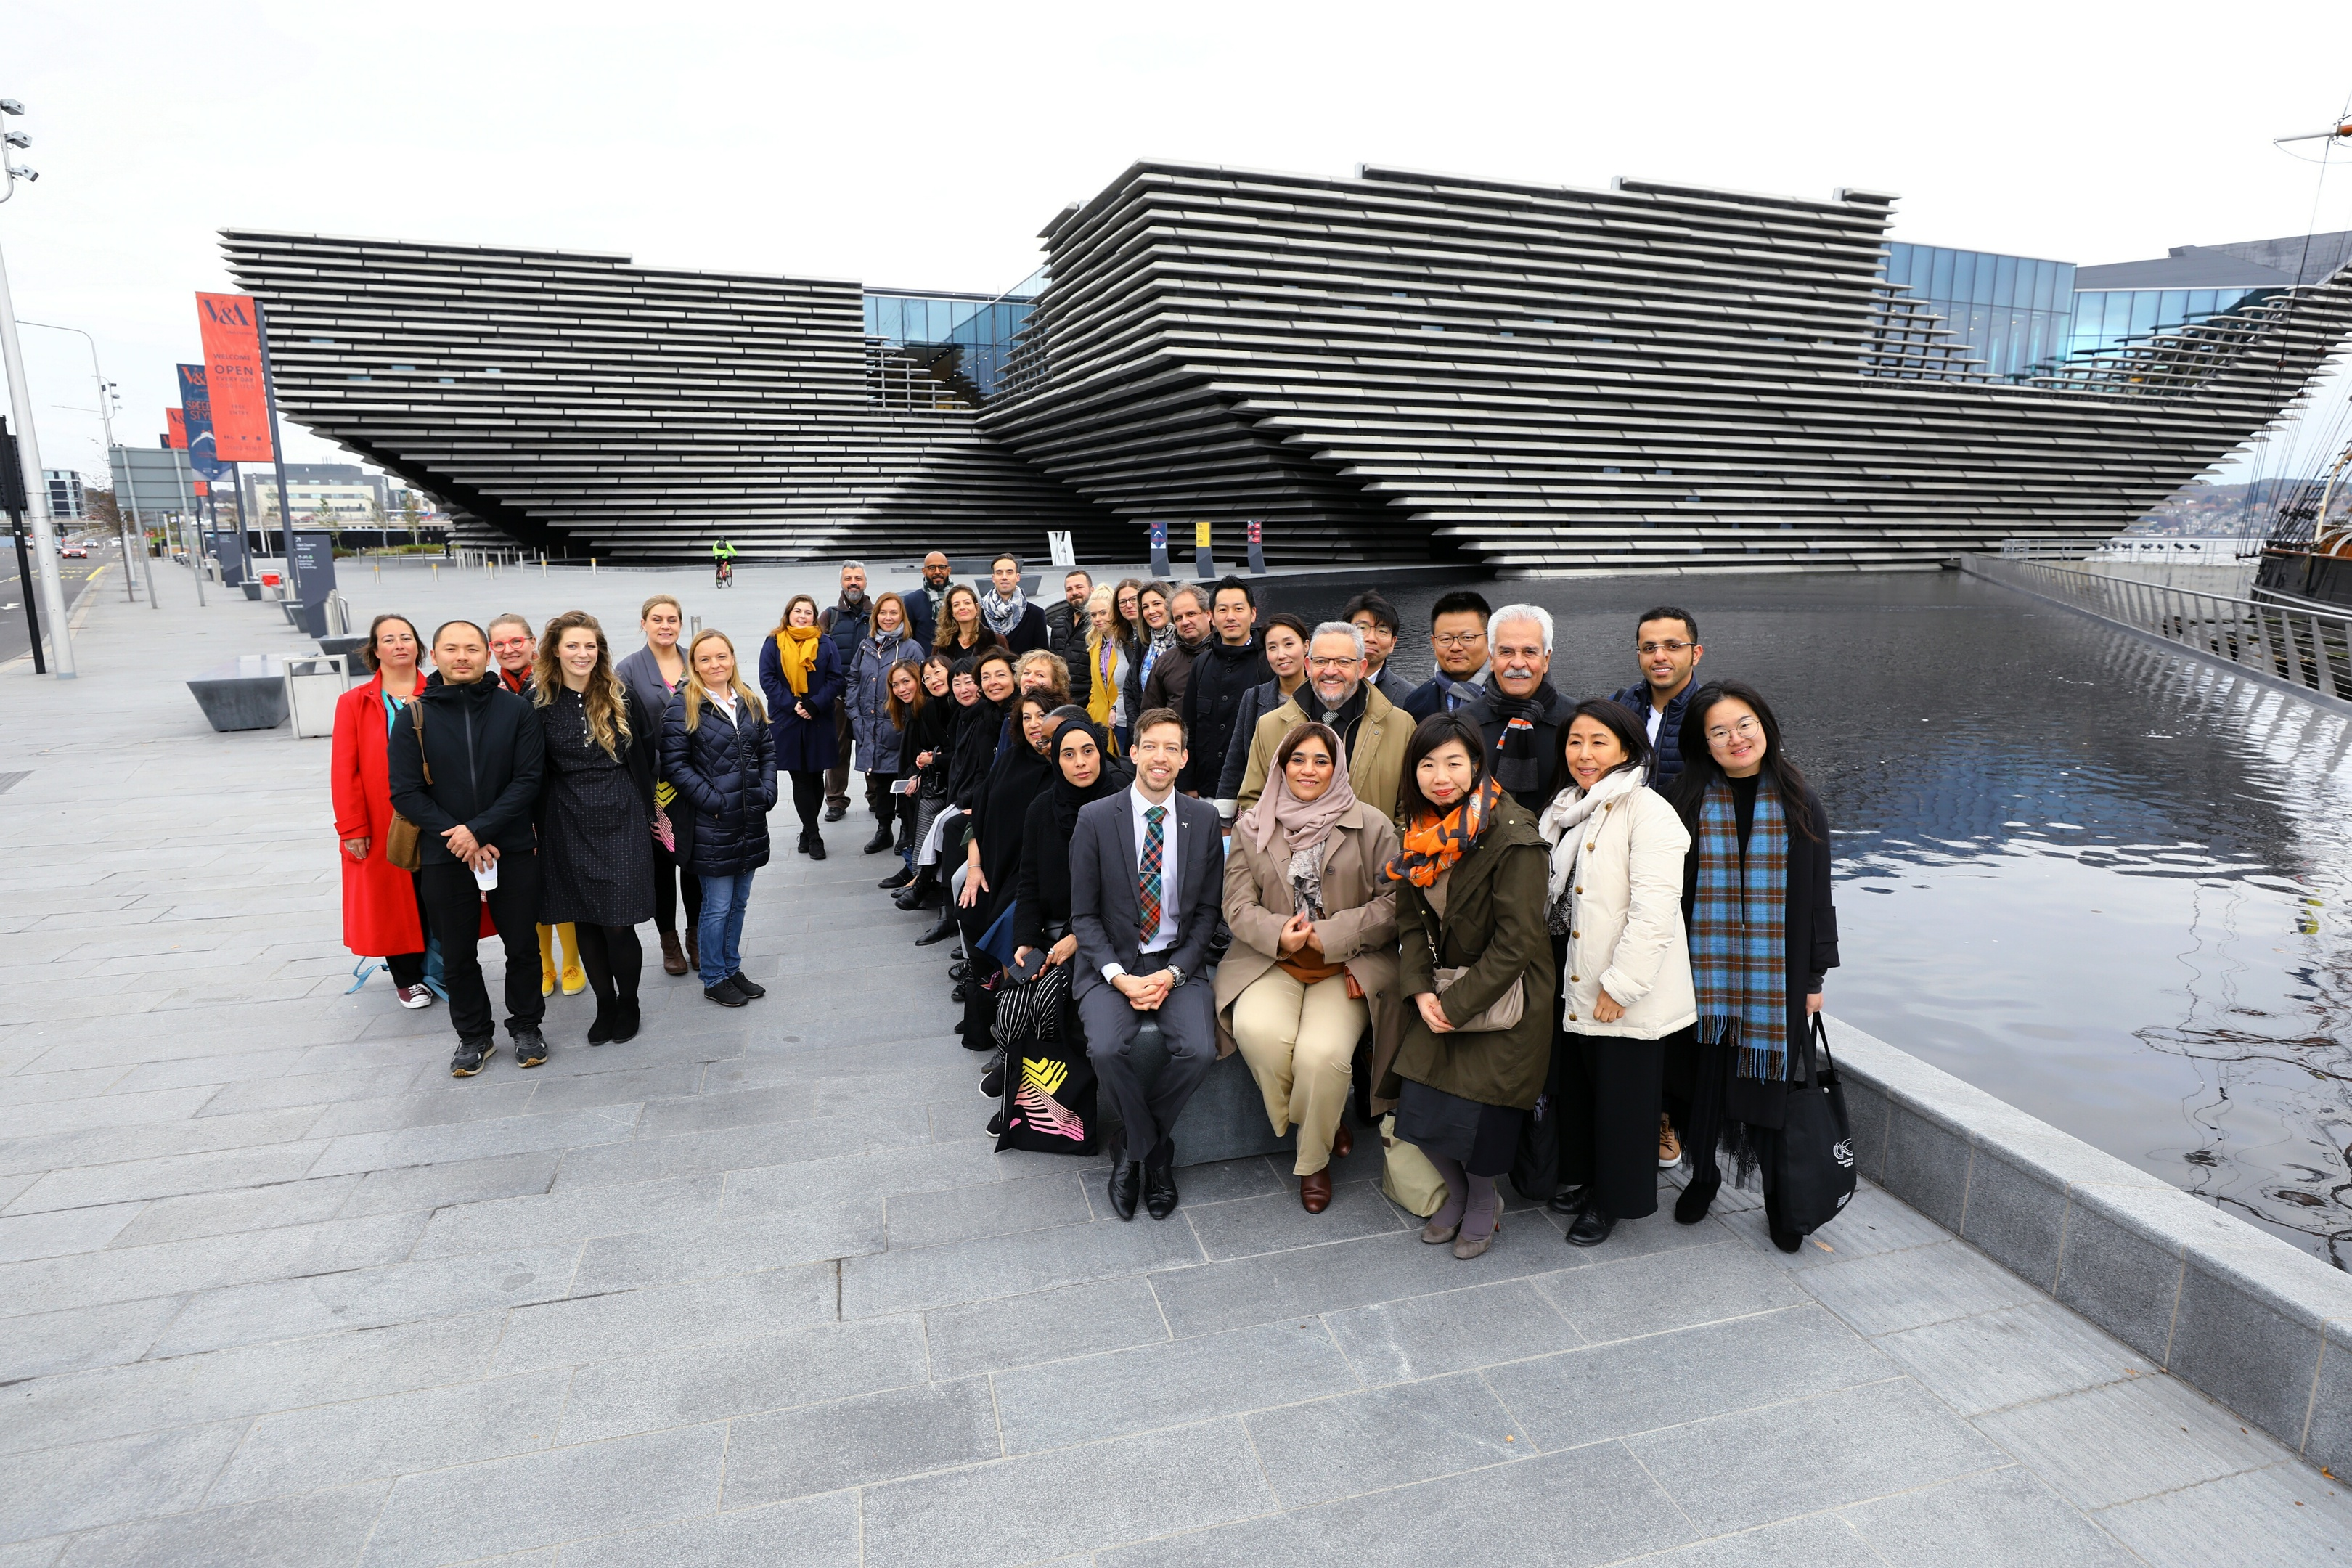 Council leader John Alexander, front, with the UNESCO delegates at the V&A